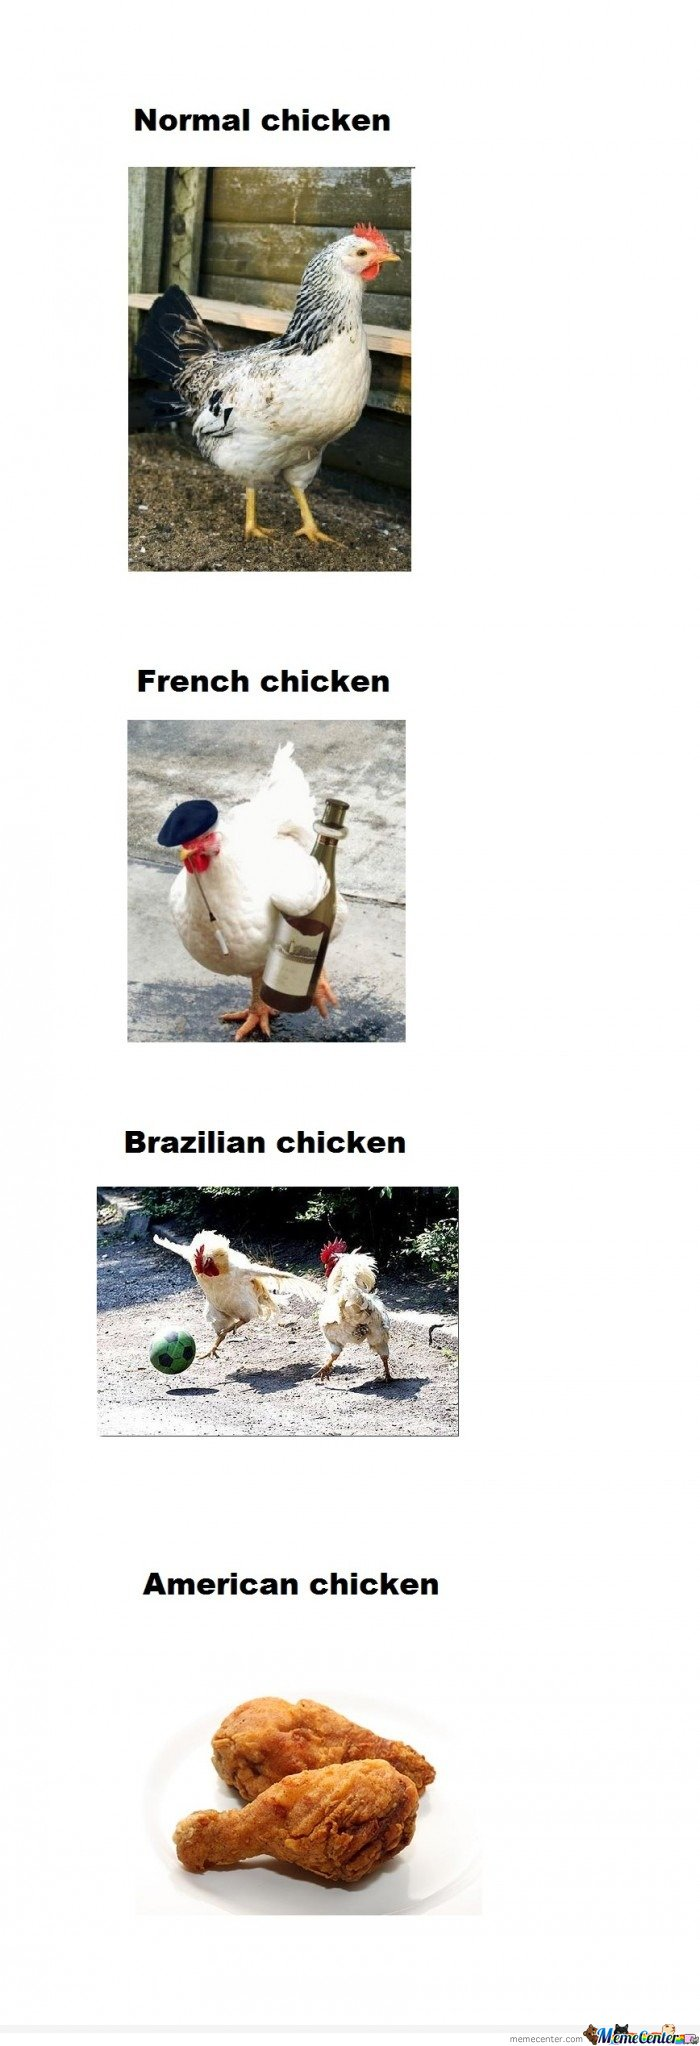 Chicken & French Chicken & Brazilian Chicken